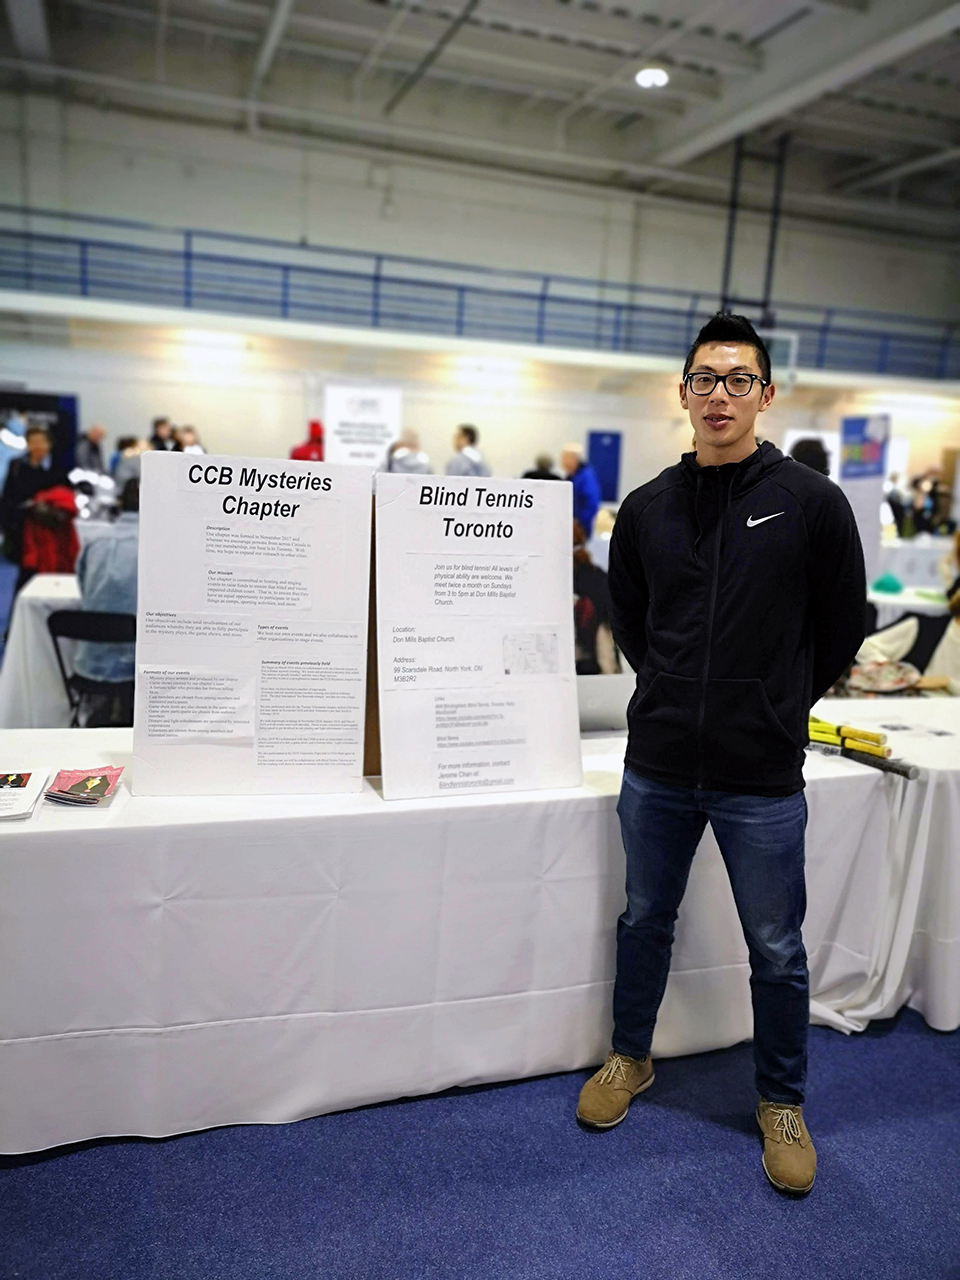 Jerome Chan stands to the right of side by side table placards. On the left the CCB Mysteries Chapter placard. On the right the Blind Tennis Toronto placard. Expo in the background.